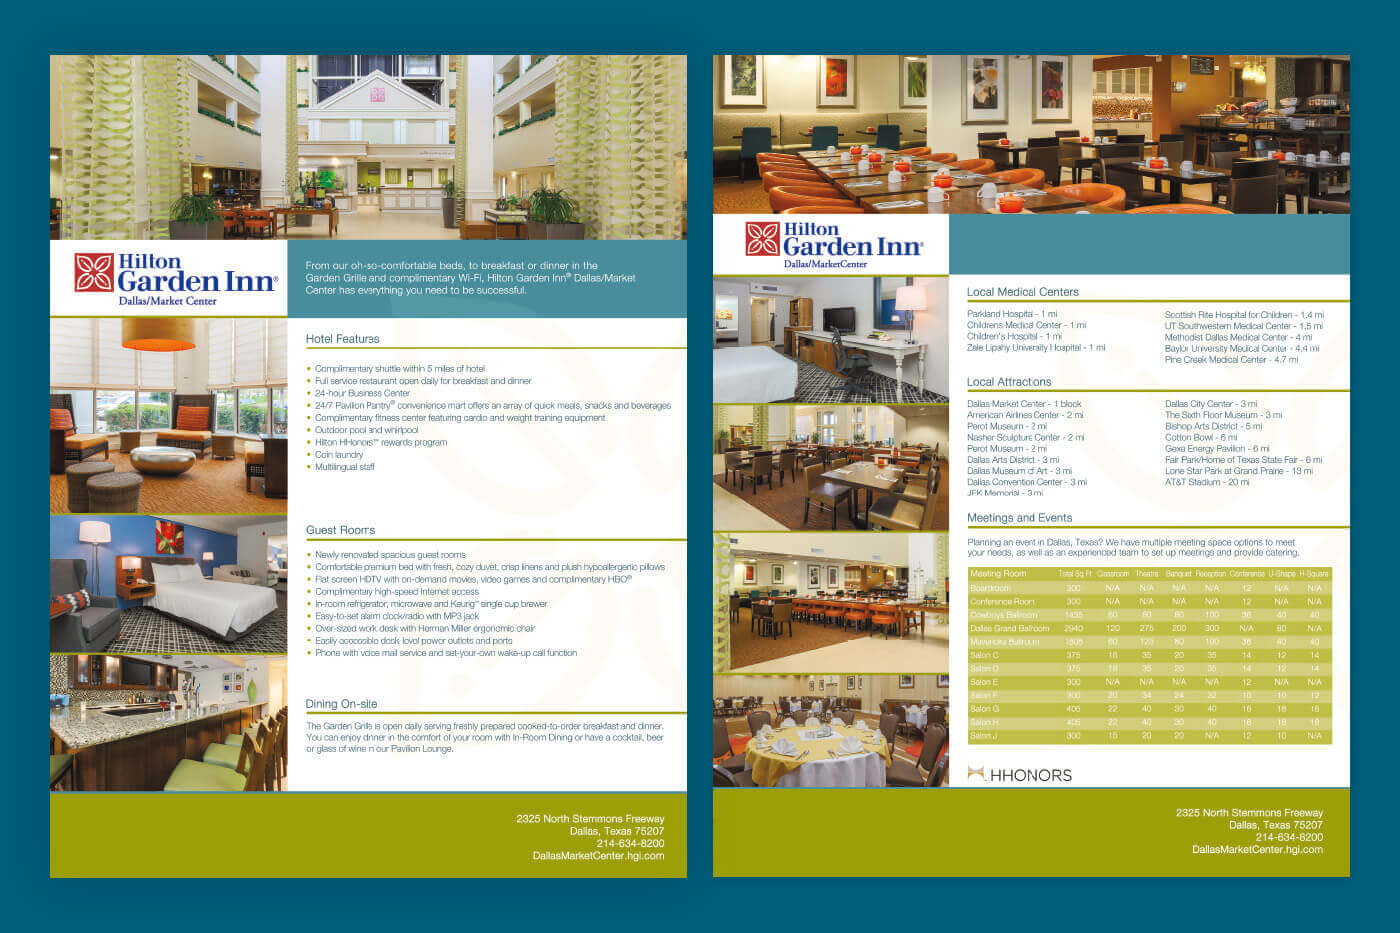 Collateral Marketing - Hilton Garden Inn Dallas/Market Center Factsheet